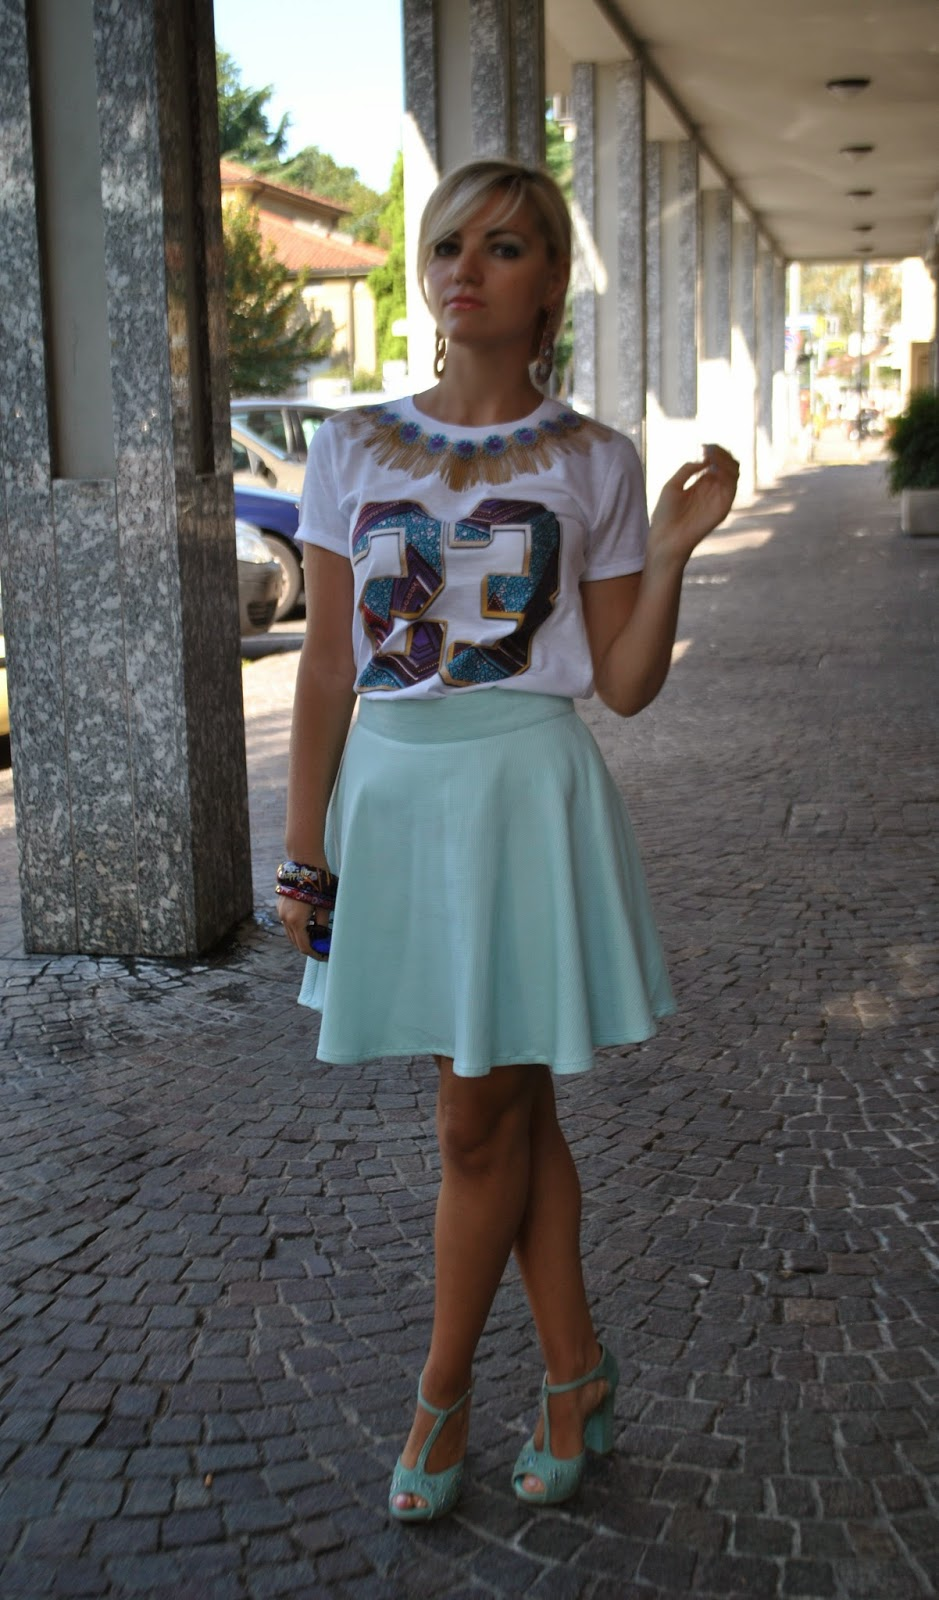 outfit t-shirt tee trend e gonna a ruota verde menta outfit settembre 2014 outfit mariafelicia magno outfit casual settembre 2014 outfit colorblock byfelym fashion blogger bionde mariafelicia magno fashion blogger